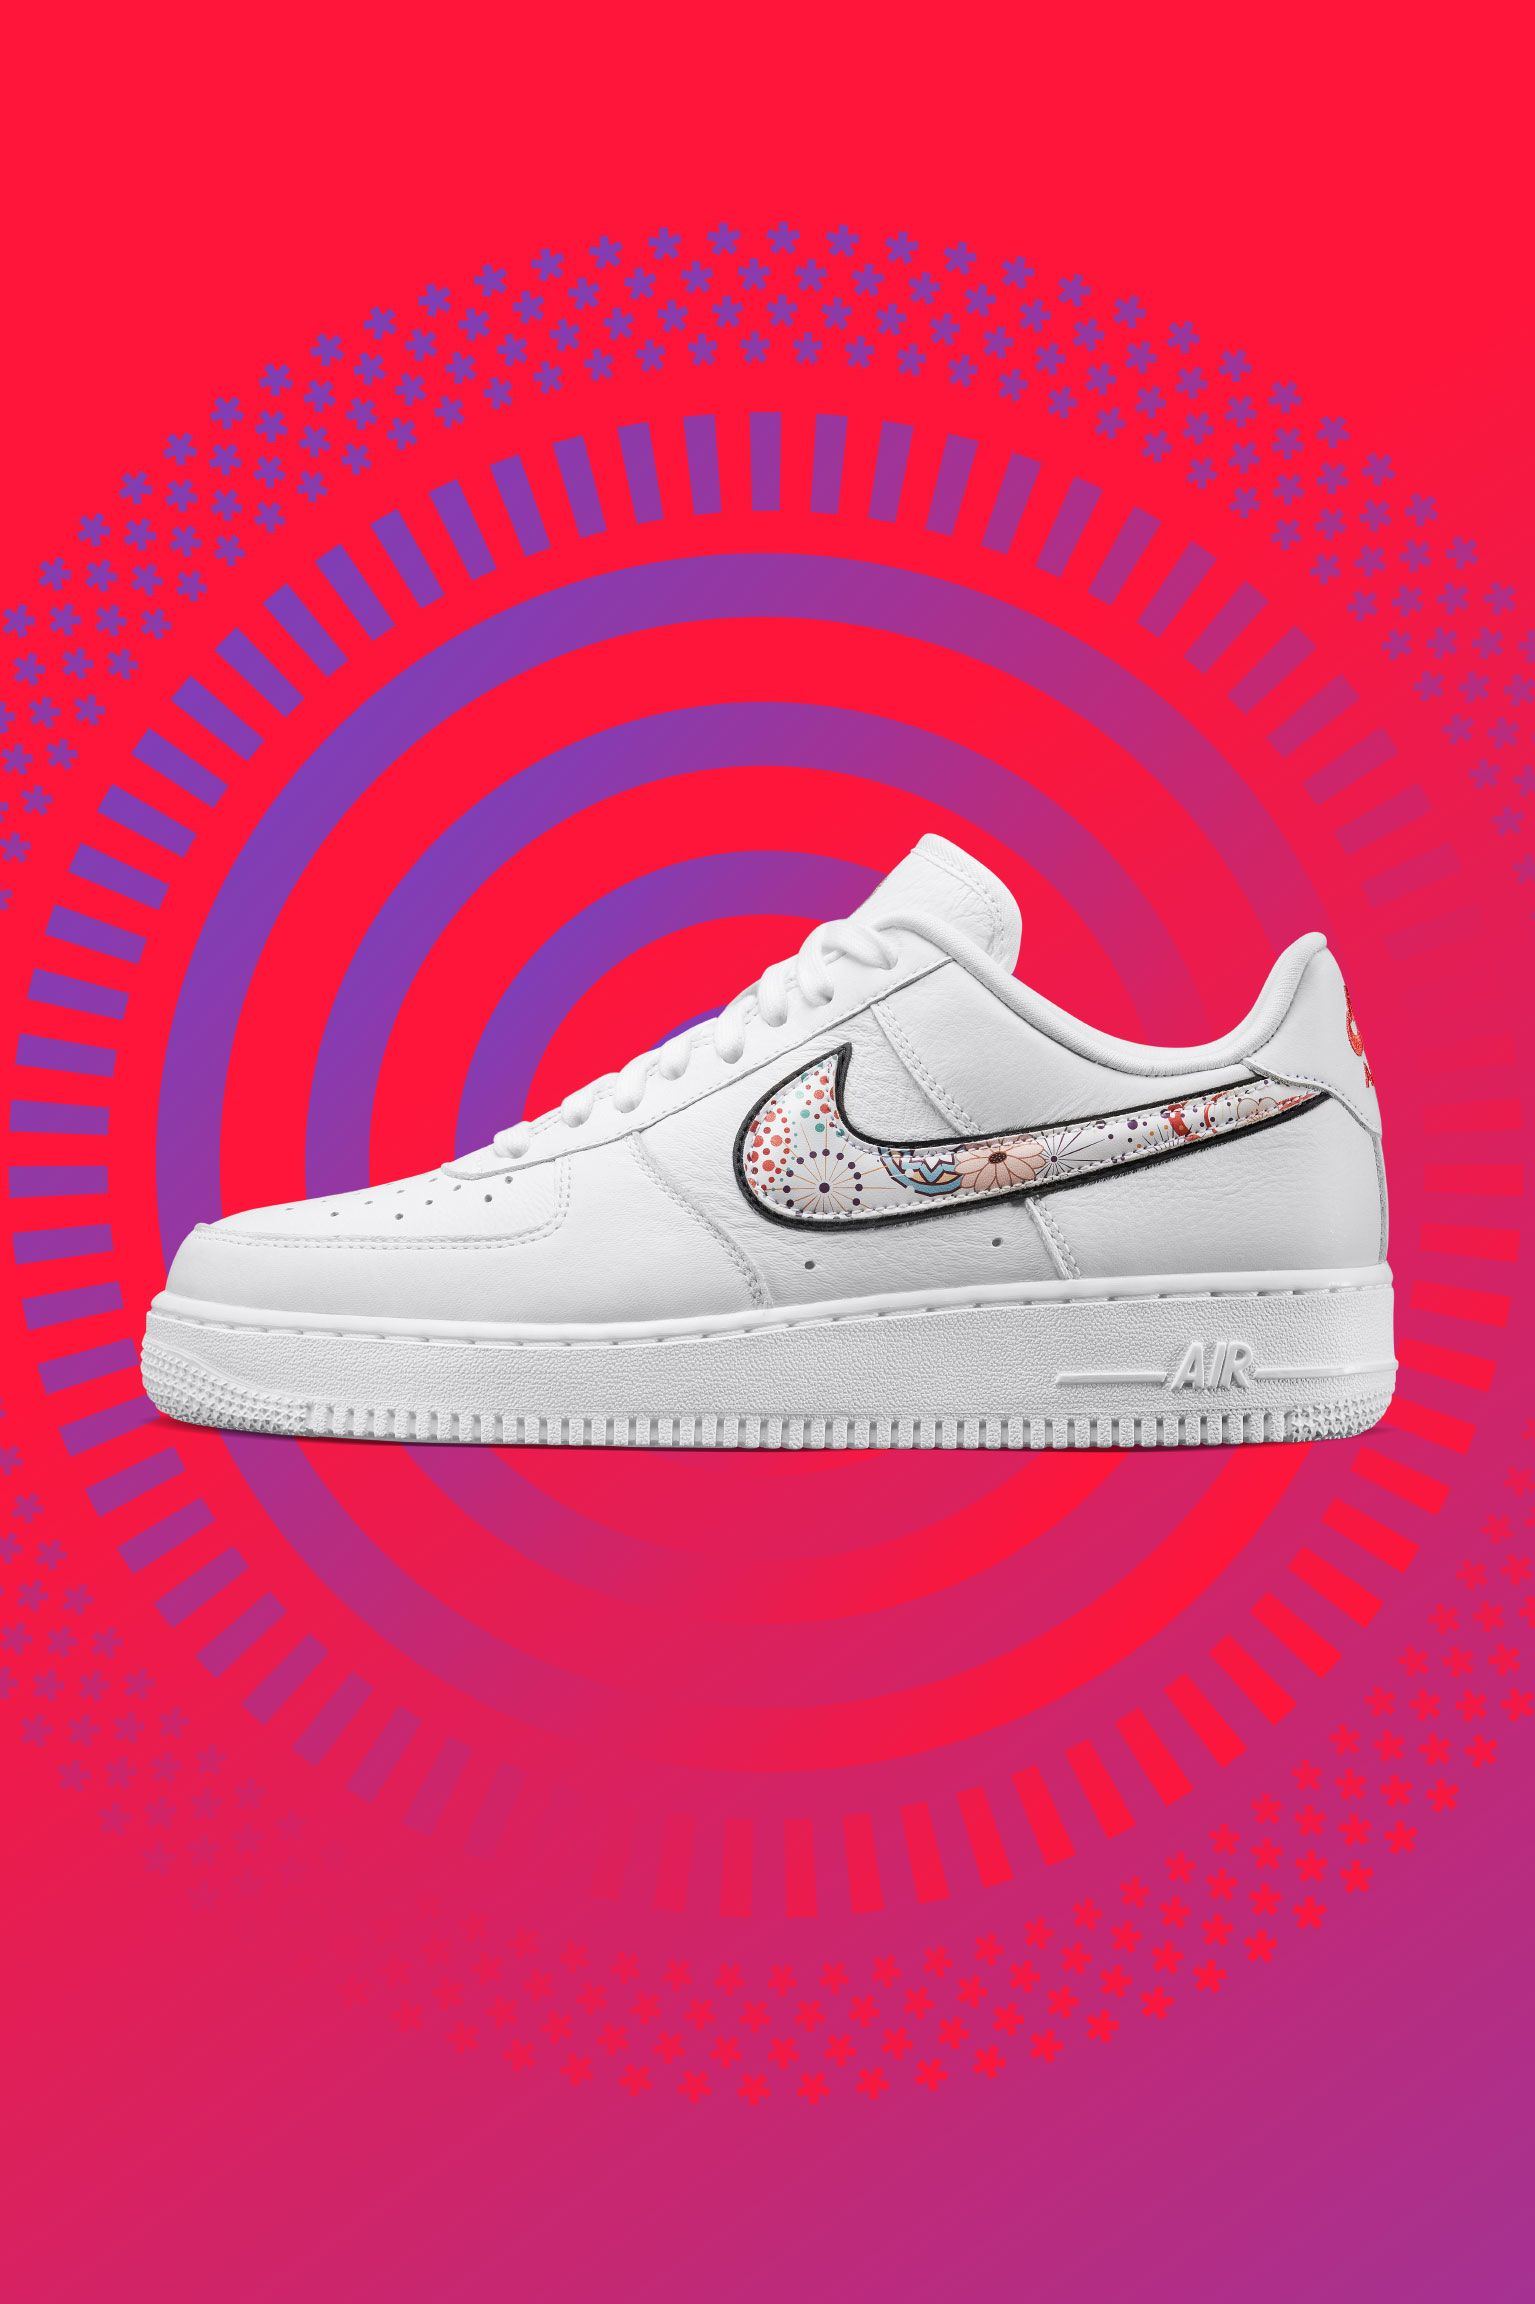 Nike Air Force 1 LNY 'White & Habanero Red' Release Date